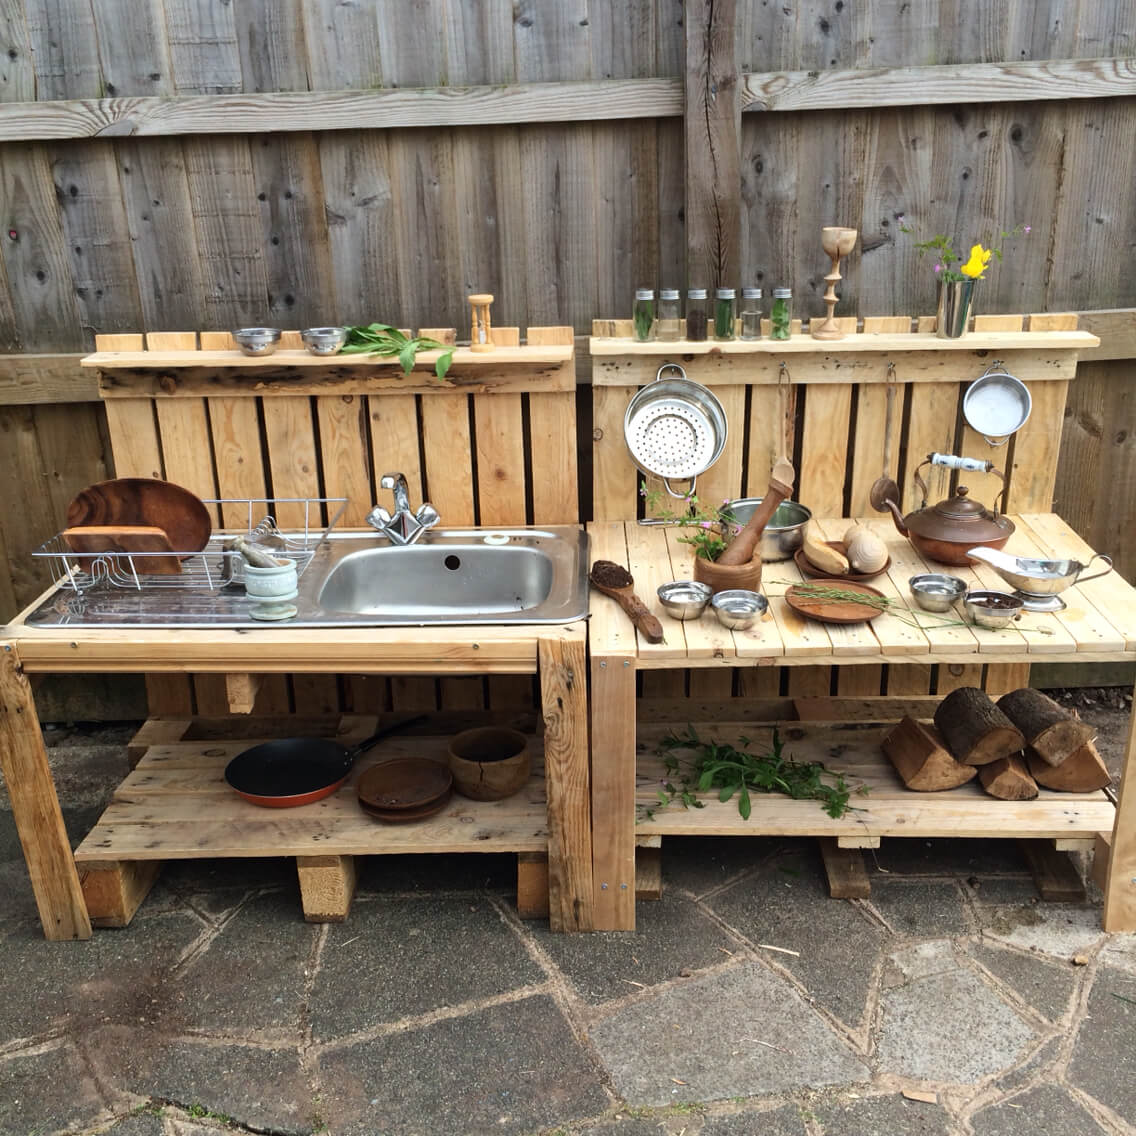 diy outdoor kitchen plans composting waste 27 best ideas and designs for 2019 wood pallet sink prep station